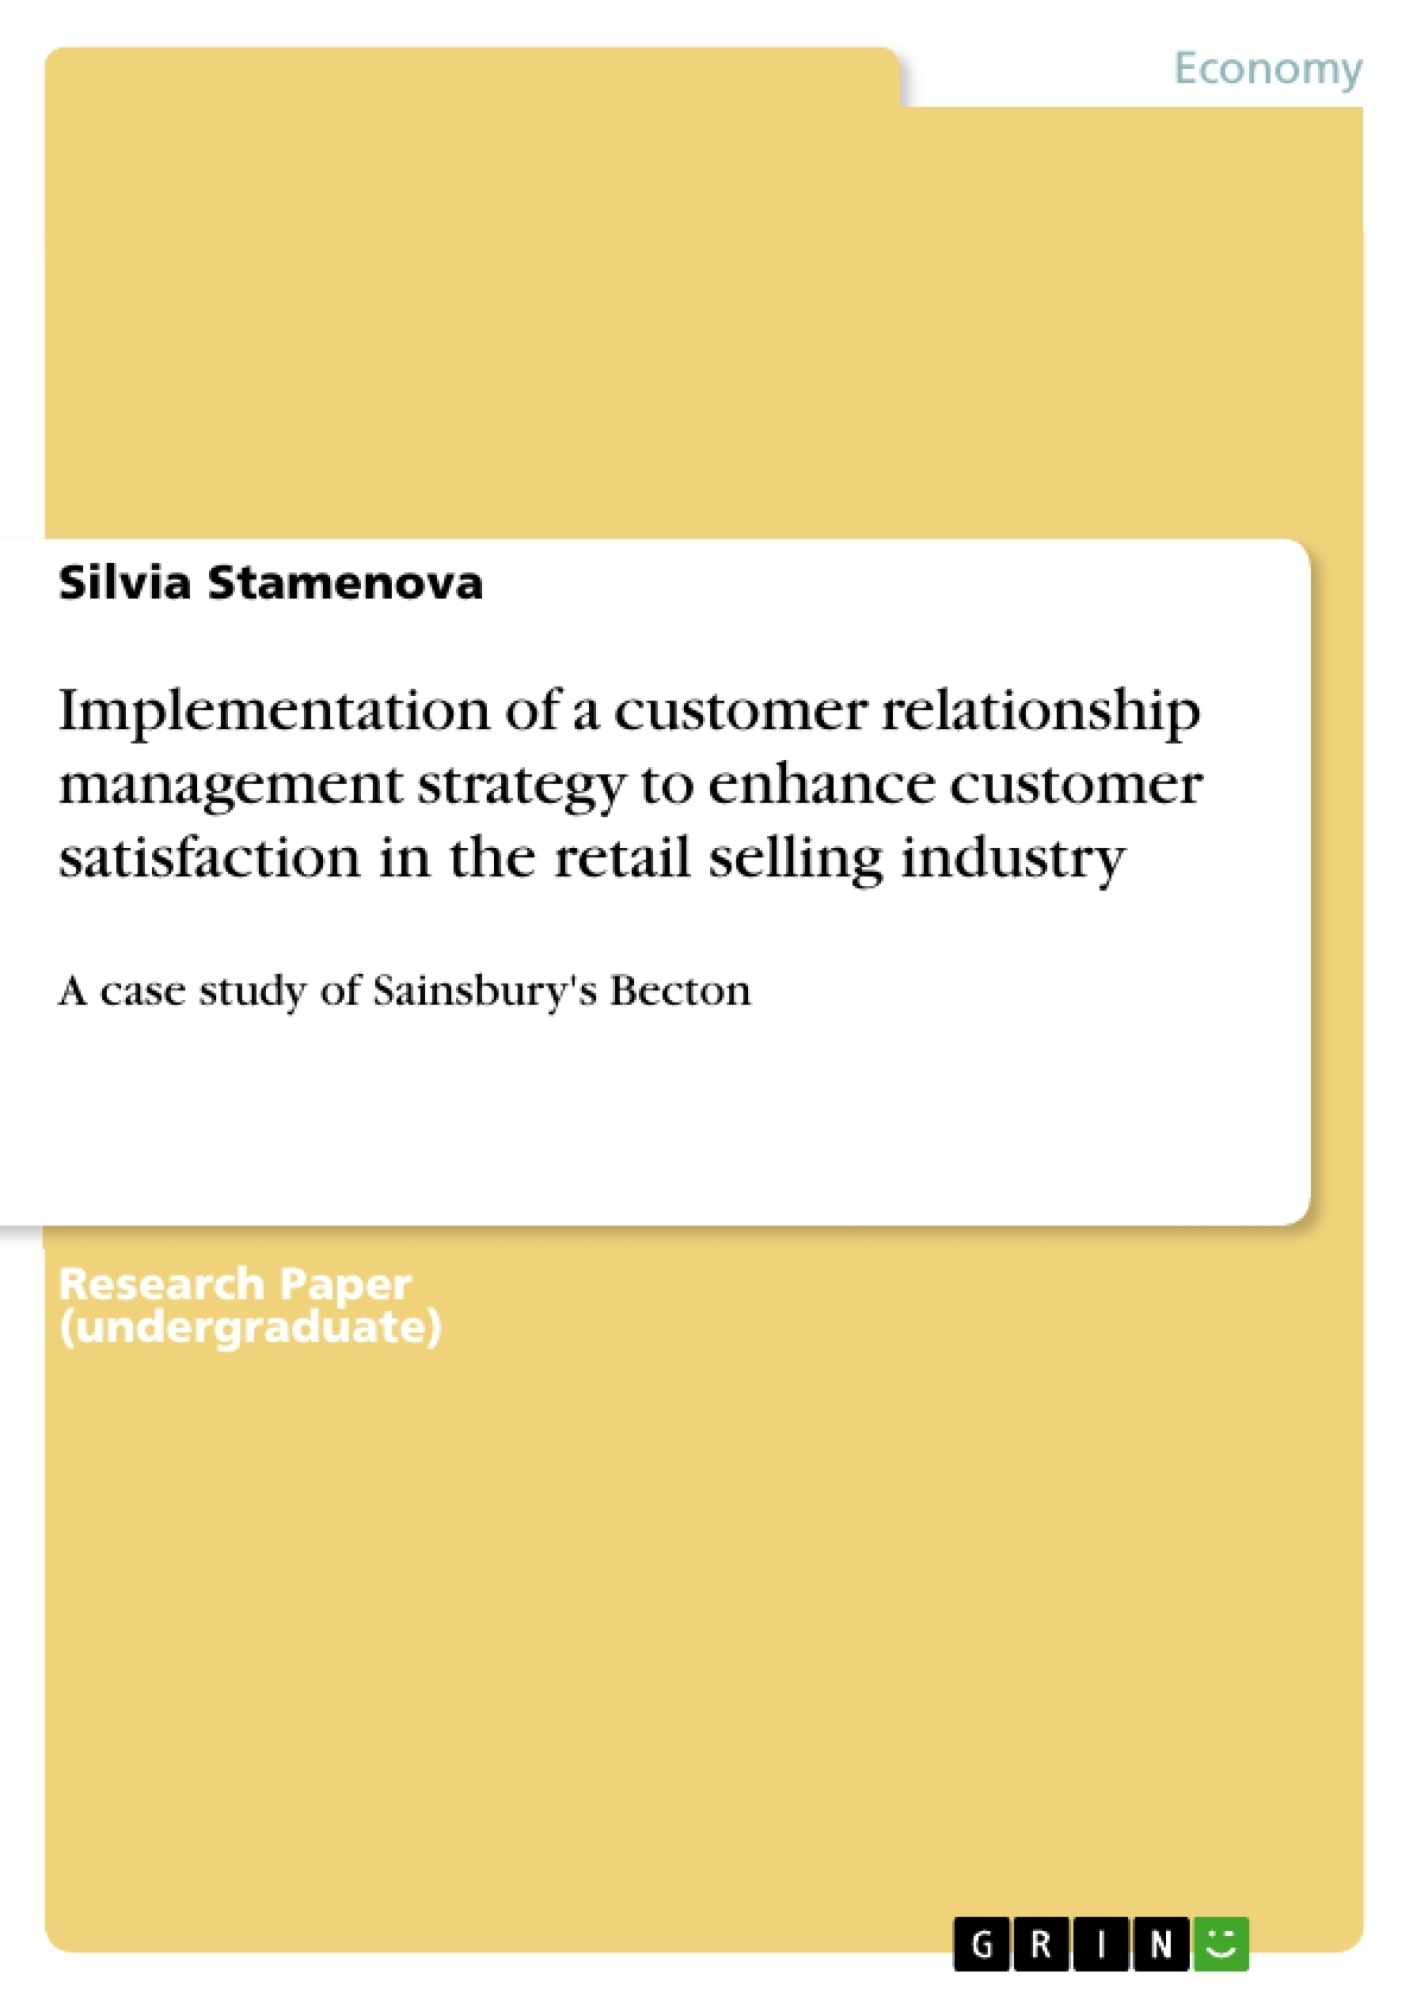 Title: Implementation of a customer relationship management strategy to enhance customer satisfaction in the retail selling industry